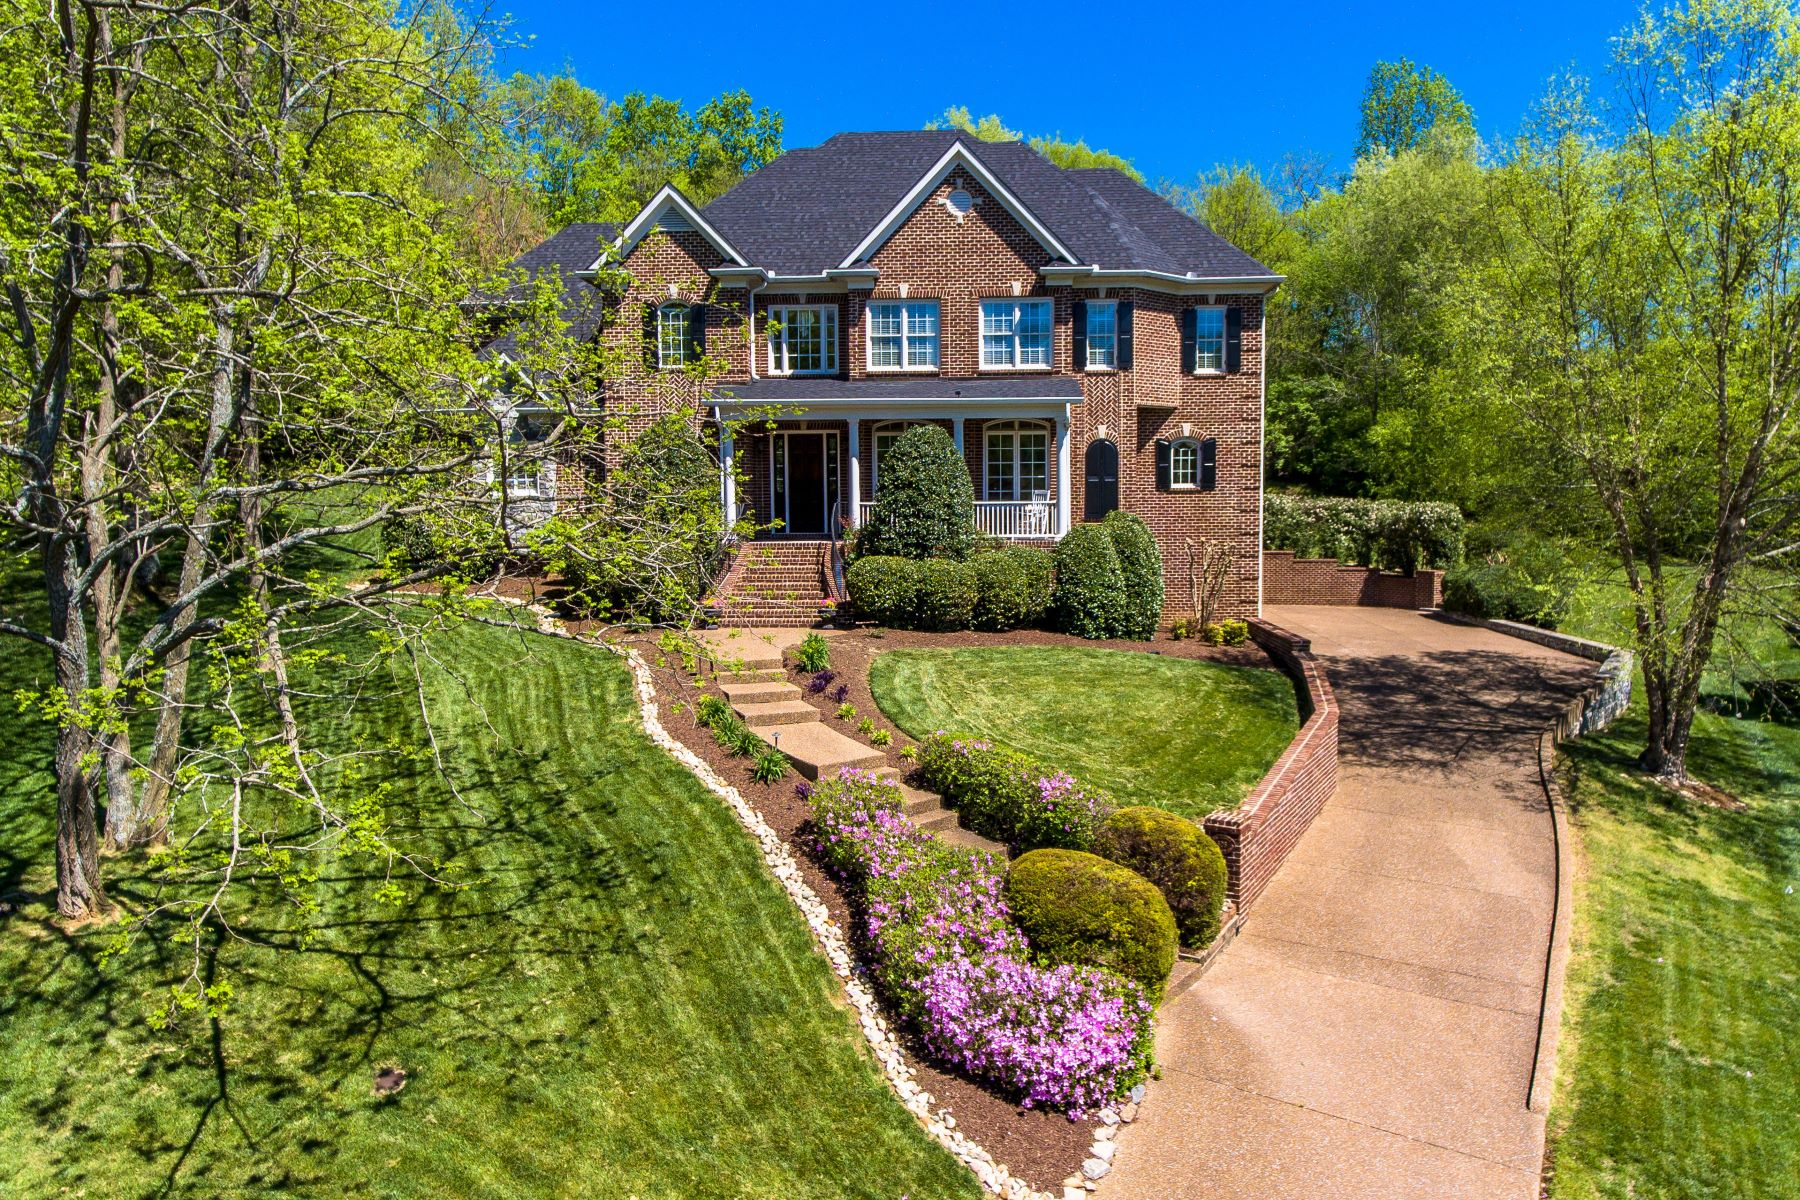 Single Family Home for Sale at Custom Built with Incredible Basement 808 Wonderland Court Franklin, Tennessee 37069 United States